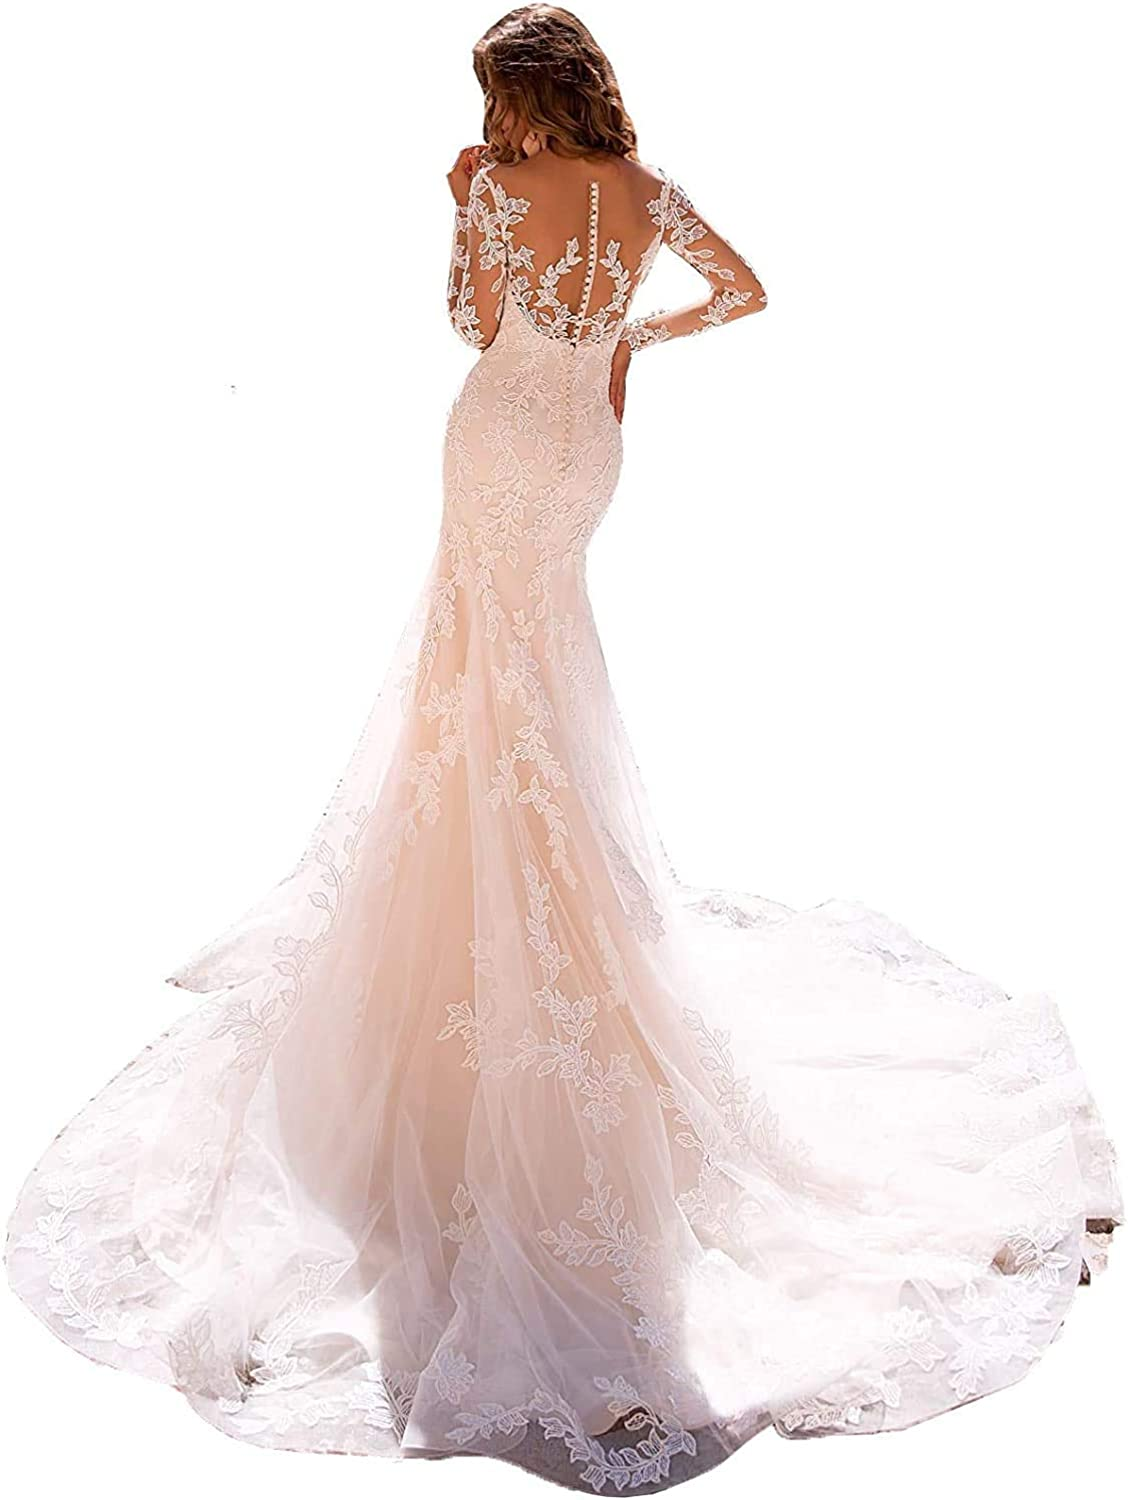 V-Neck Lace Wedding Dresses for Bride Tulle Boho Long A Line Illusion Beach Bridal Gowns 2021